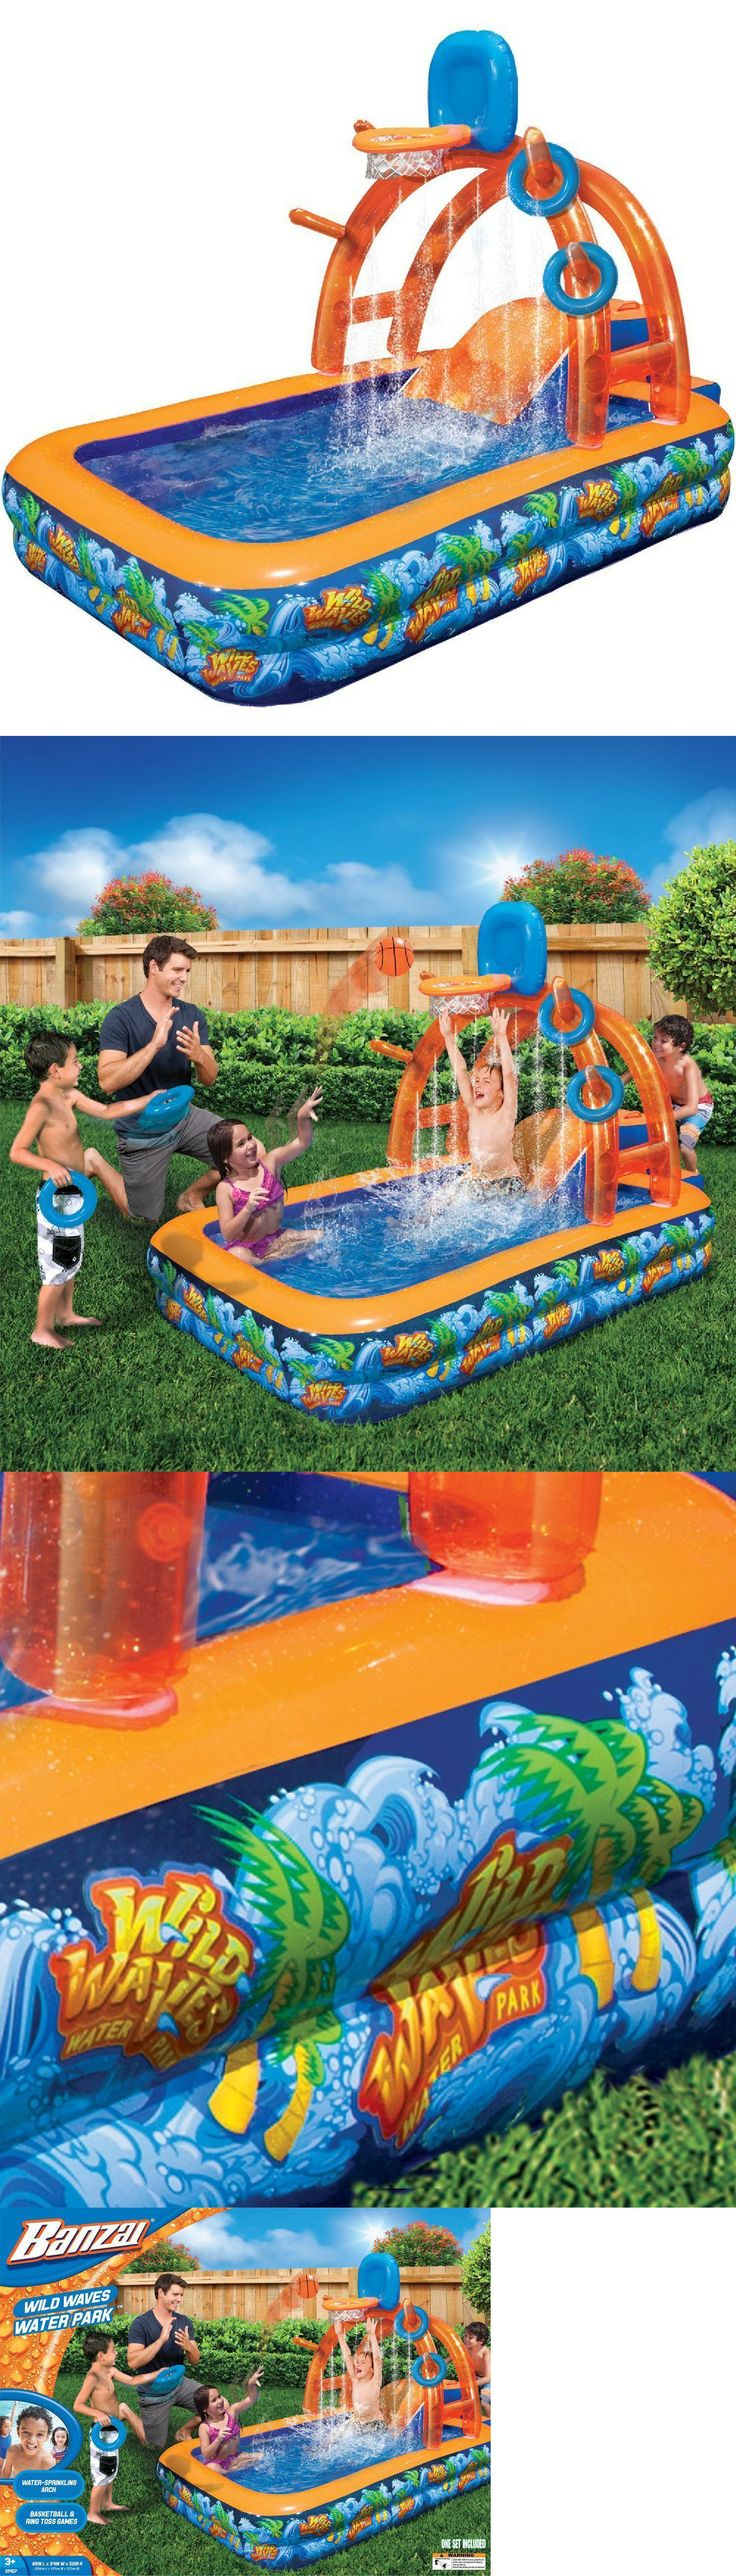 Water Slides 145992: Inflatable Water Slide Bounce House Backyard Pool Kids Bouncer Slide -> BUY IT NOW ONLY: $68.72 on eBay!